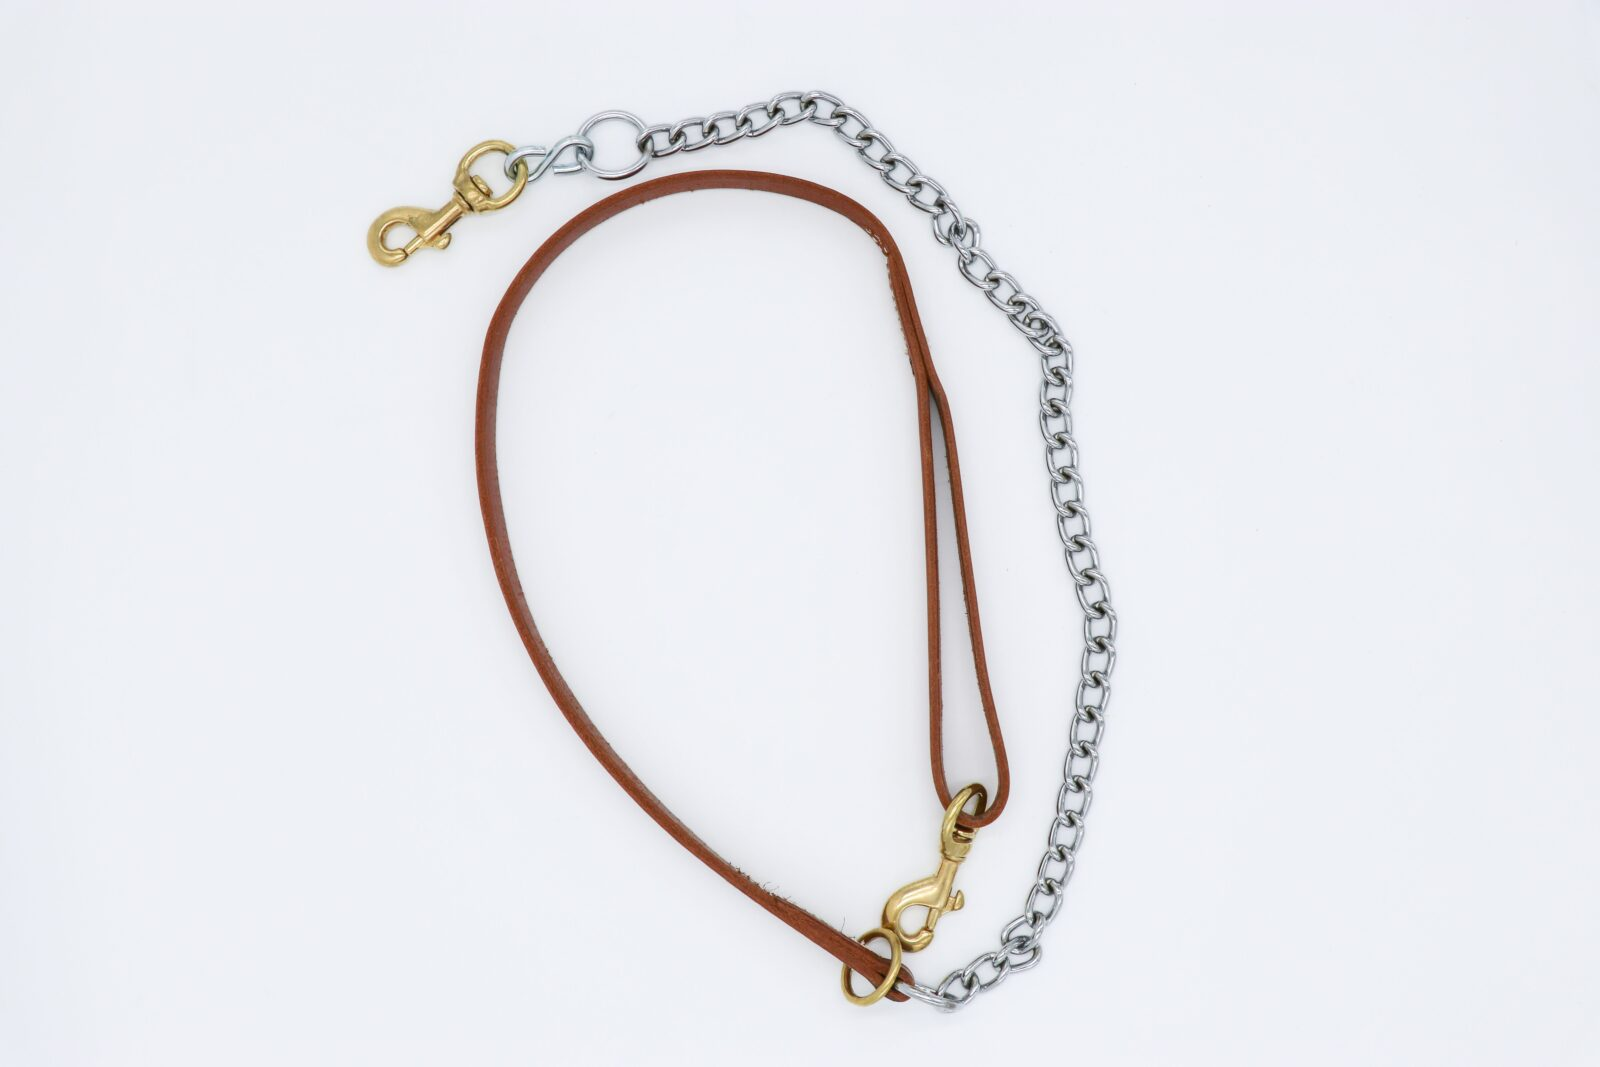 Leather Lead W Chain Dog And Hunt Supply